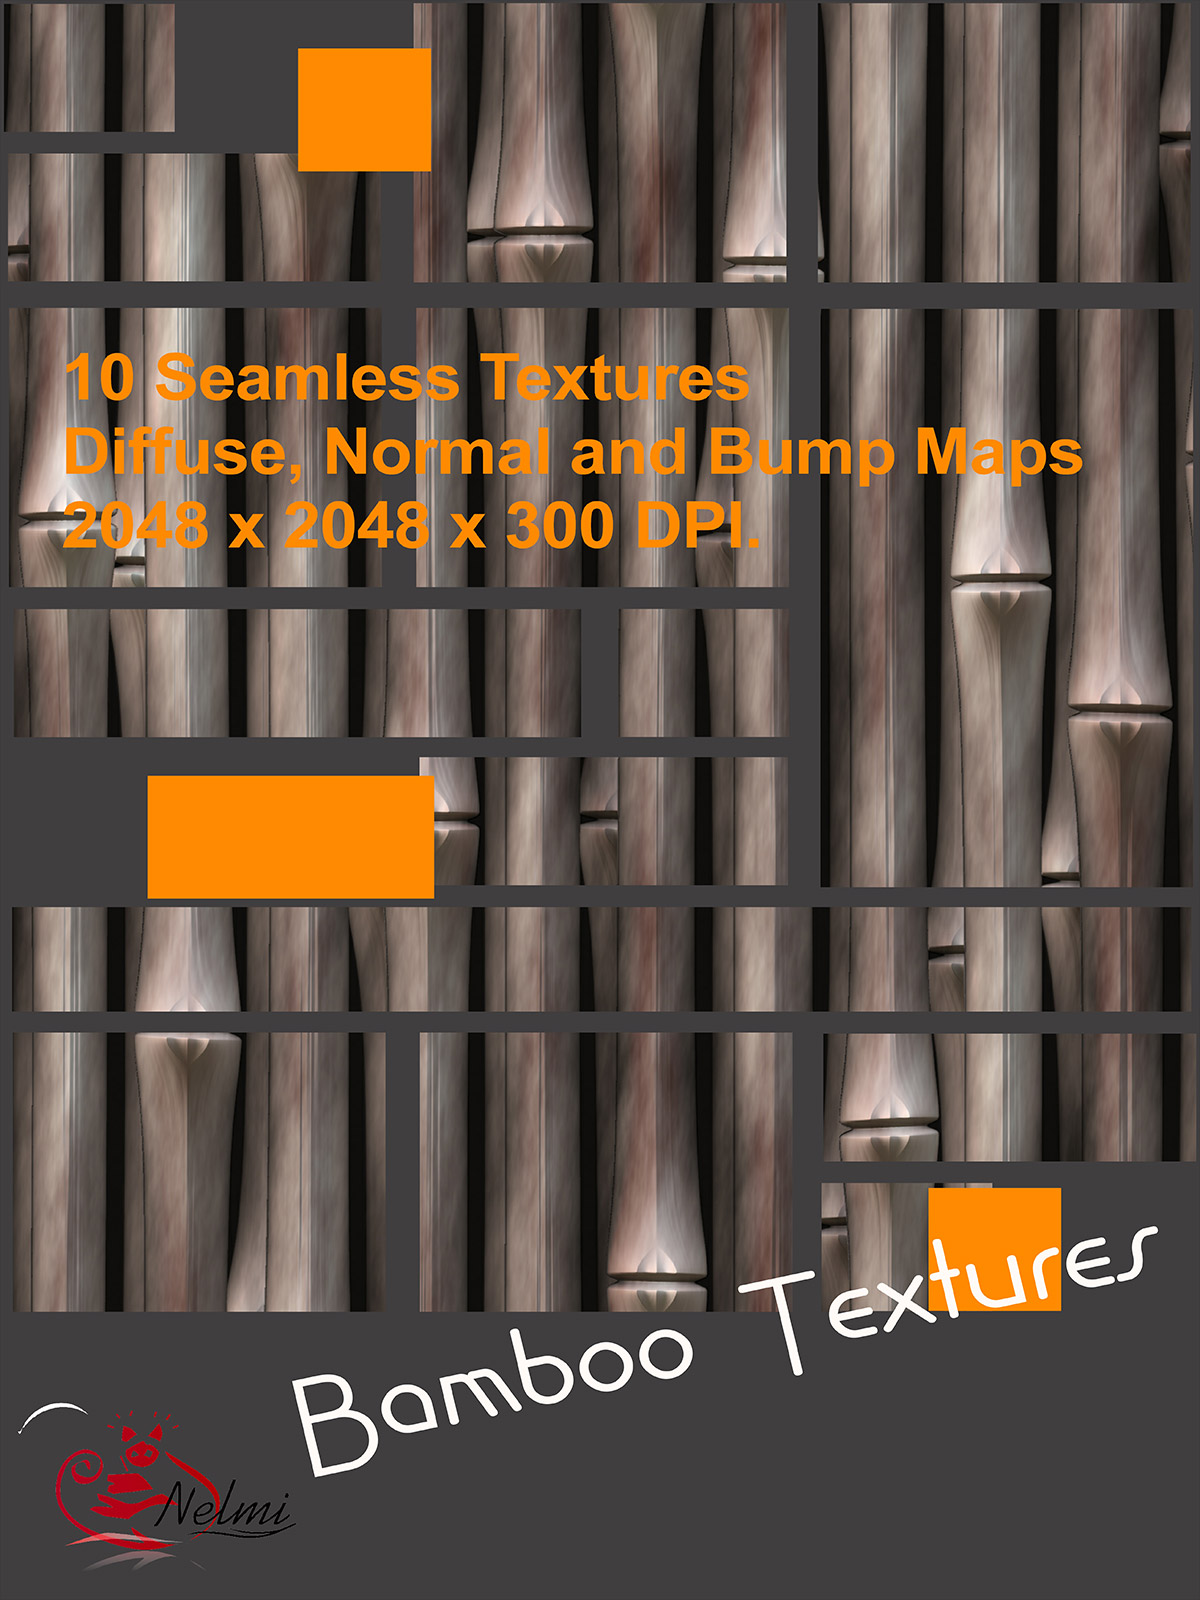 10 Seamless Bamboo Textures with Texture Maps: Bump, Diffuse and